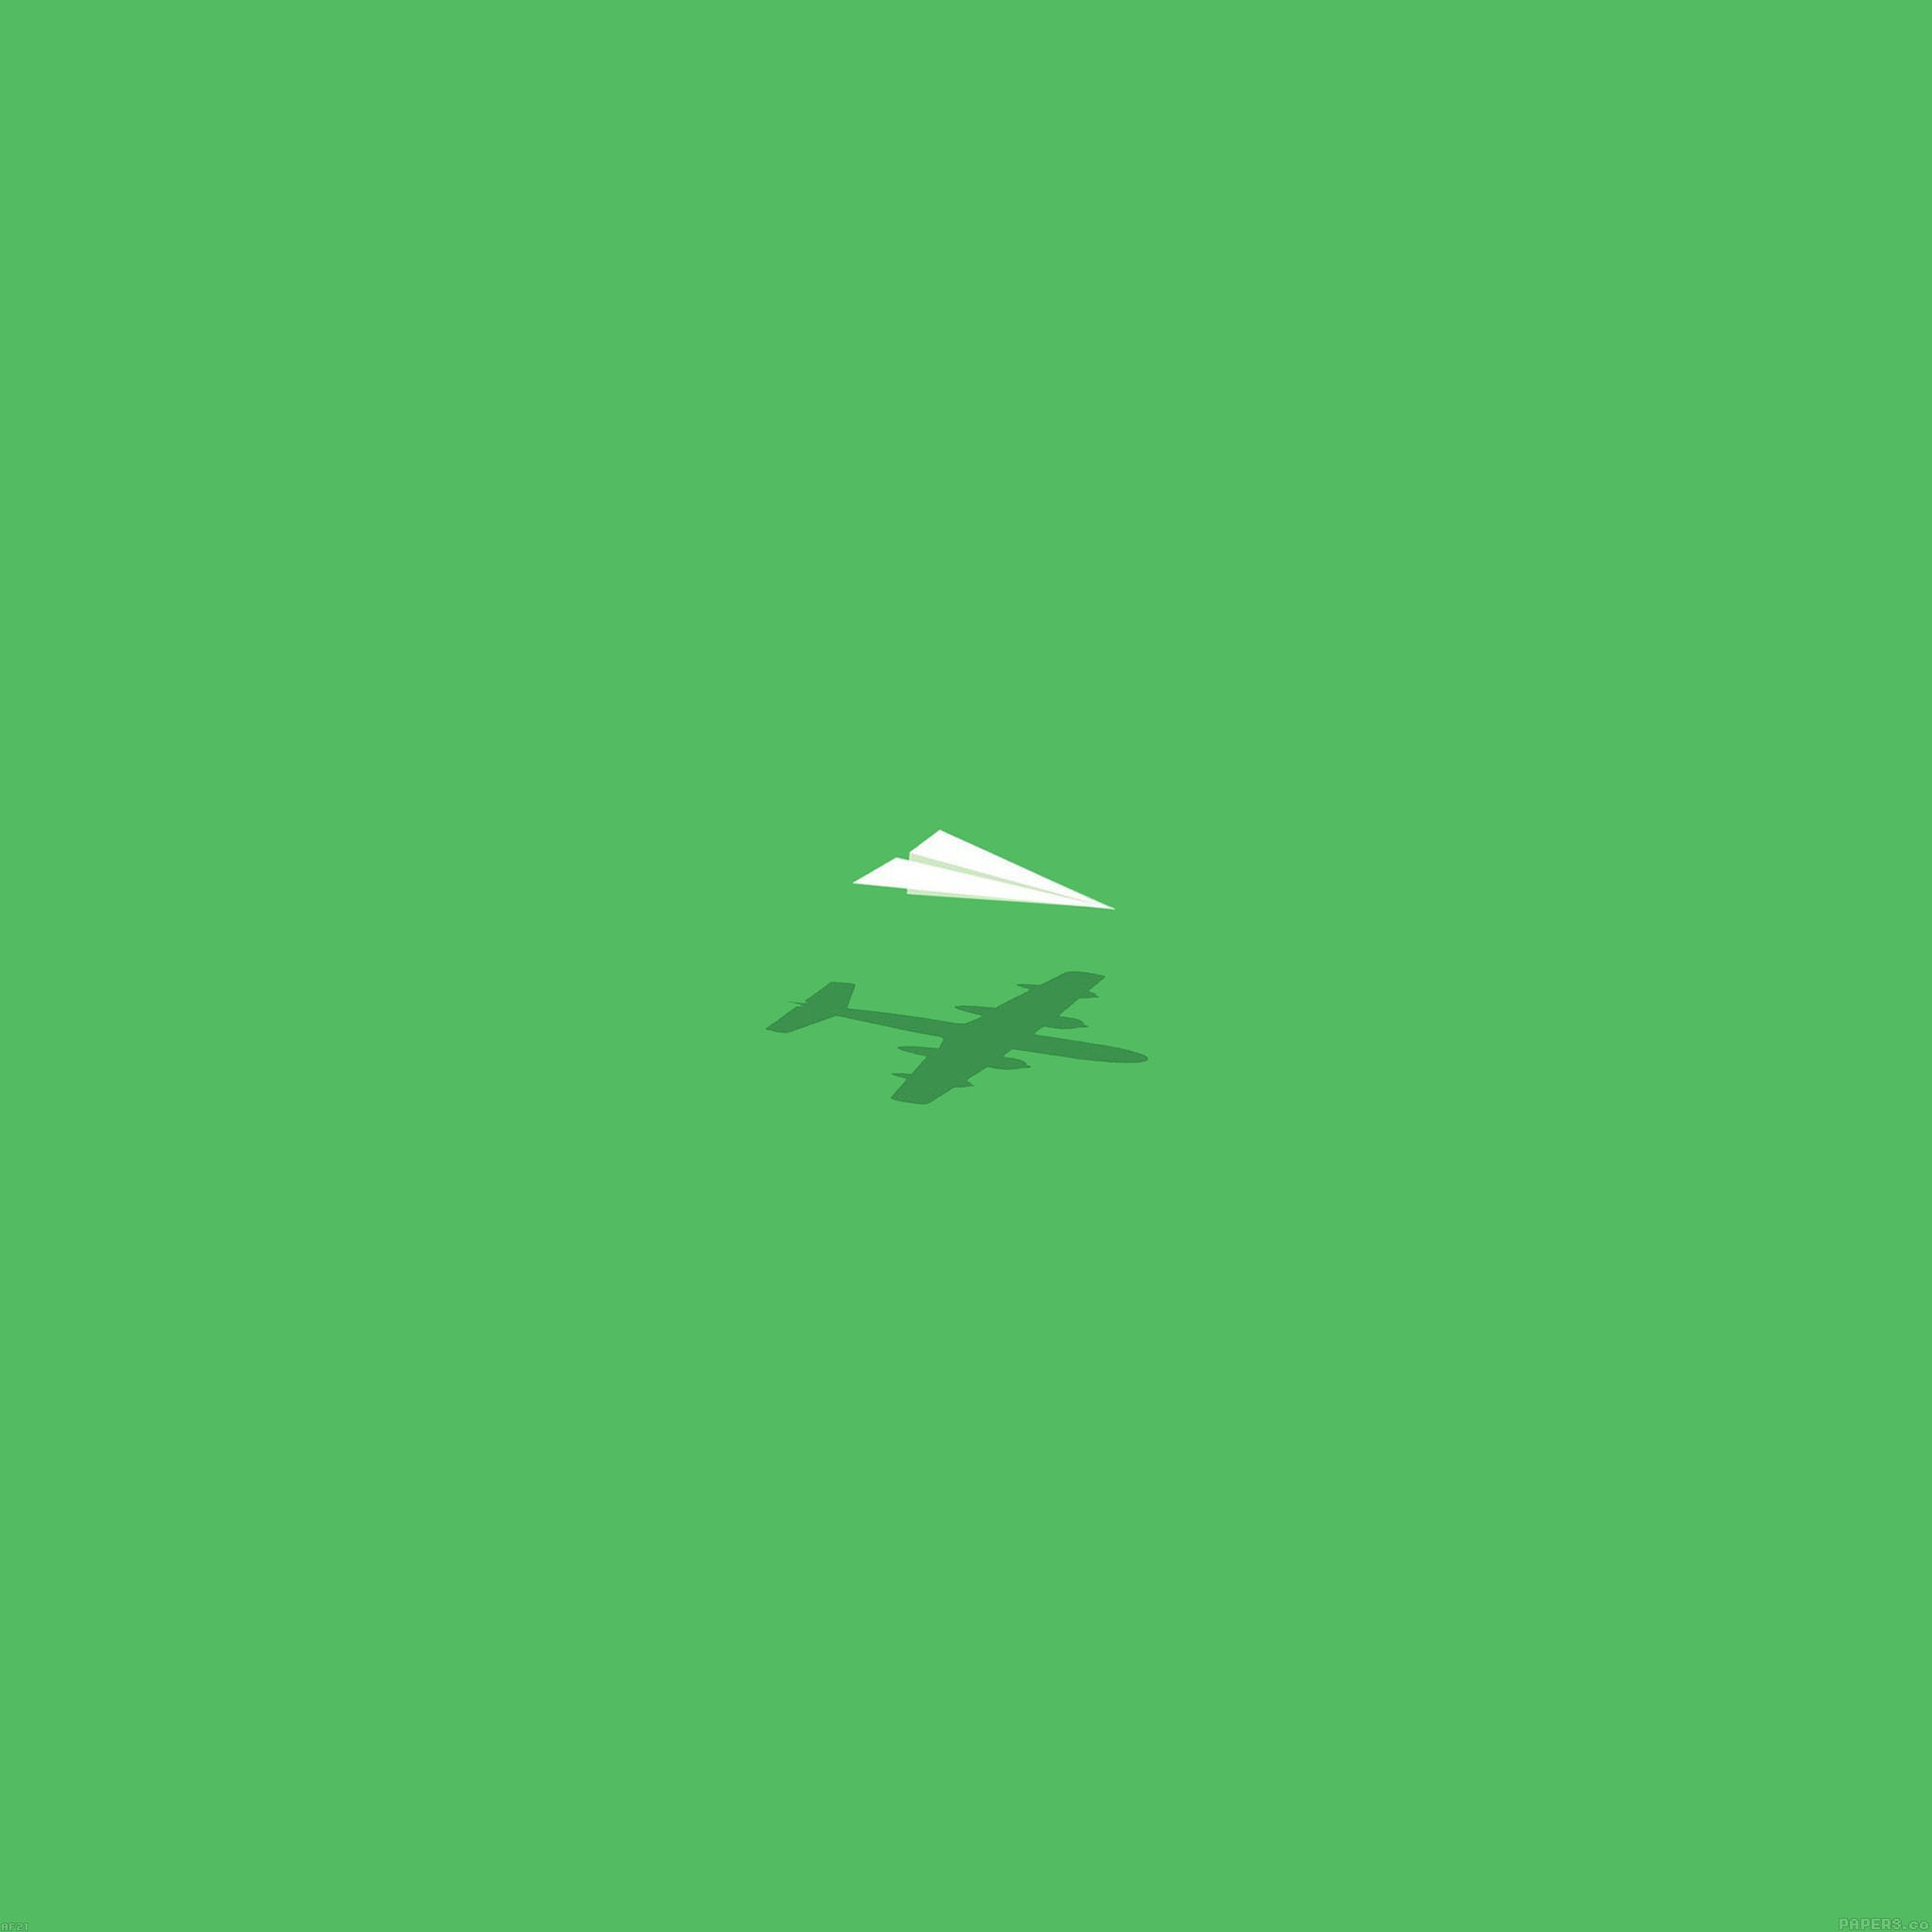 Cute Minimalistic Wallpapers Wallpapers